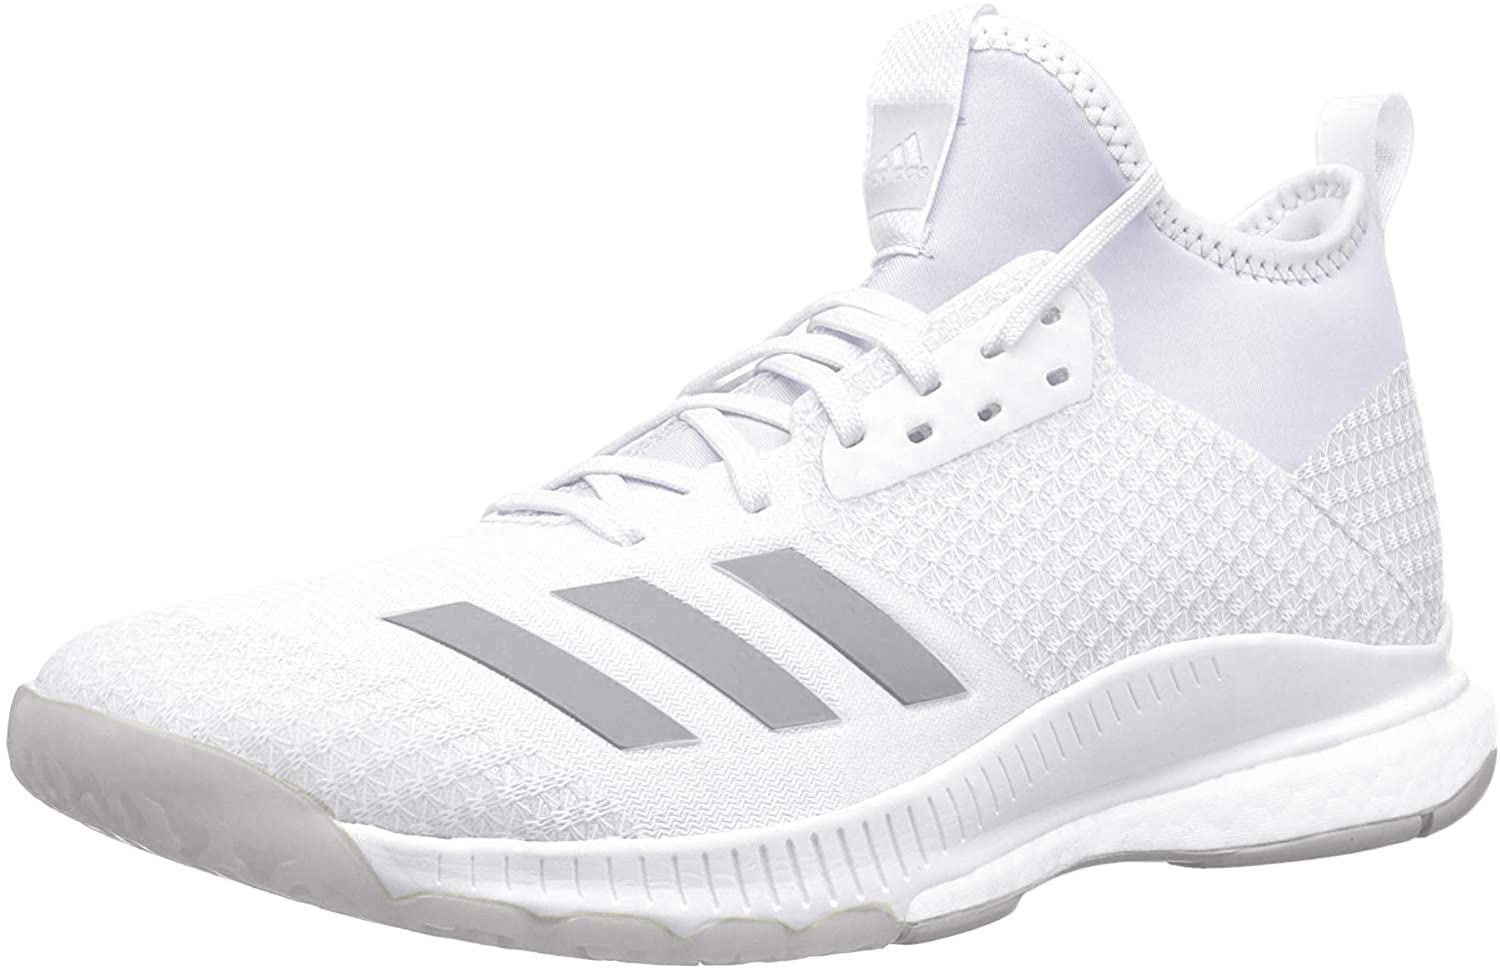 adidas crazy flight bounce 2